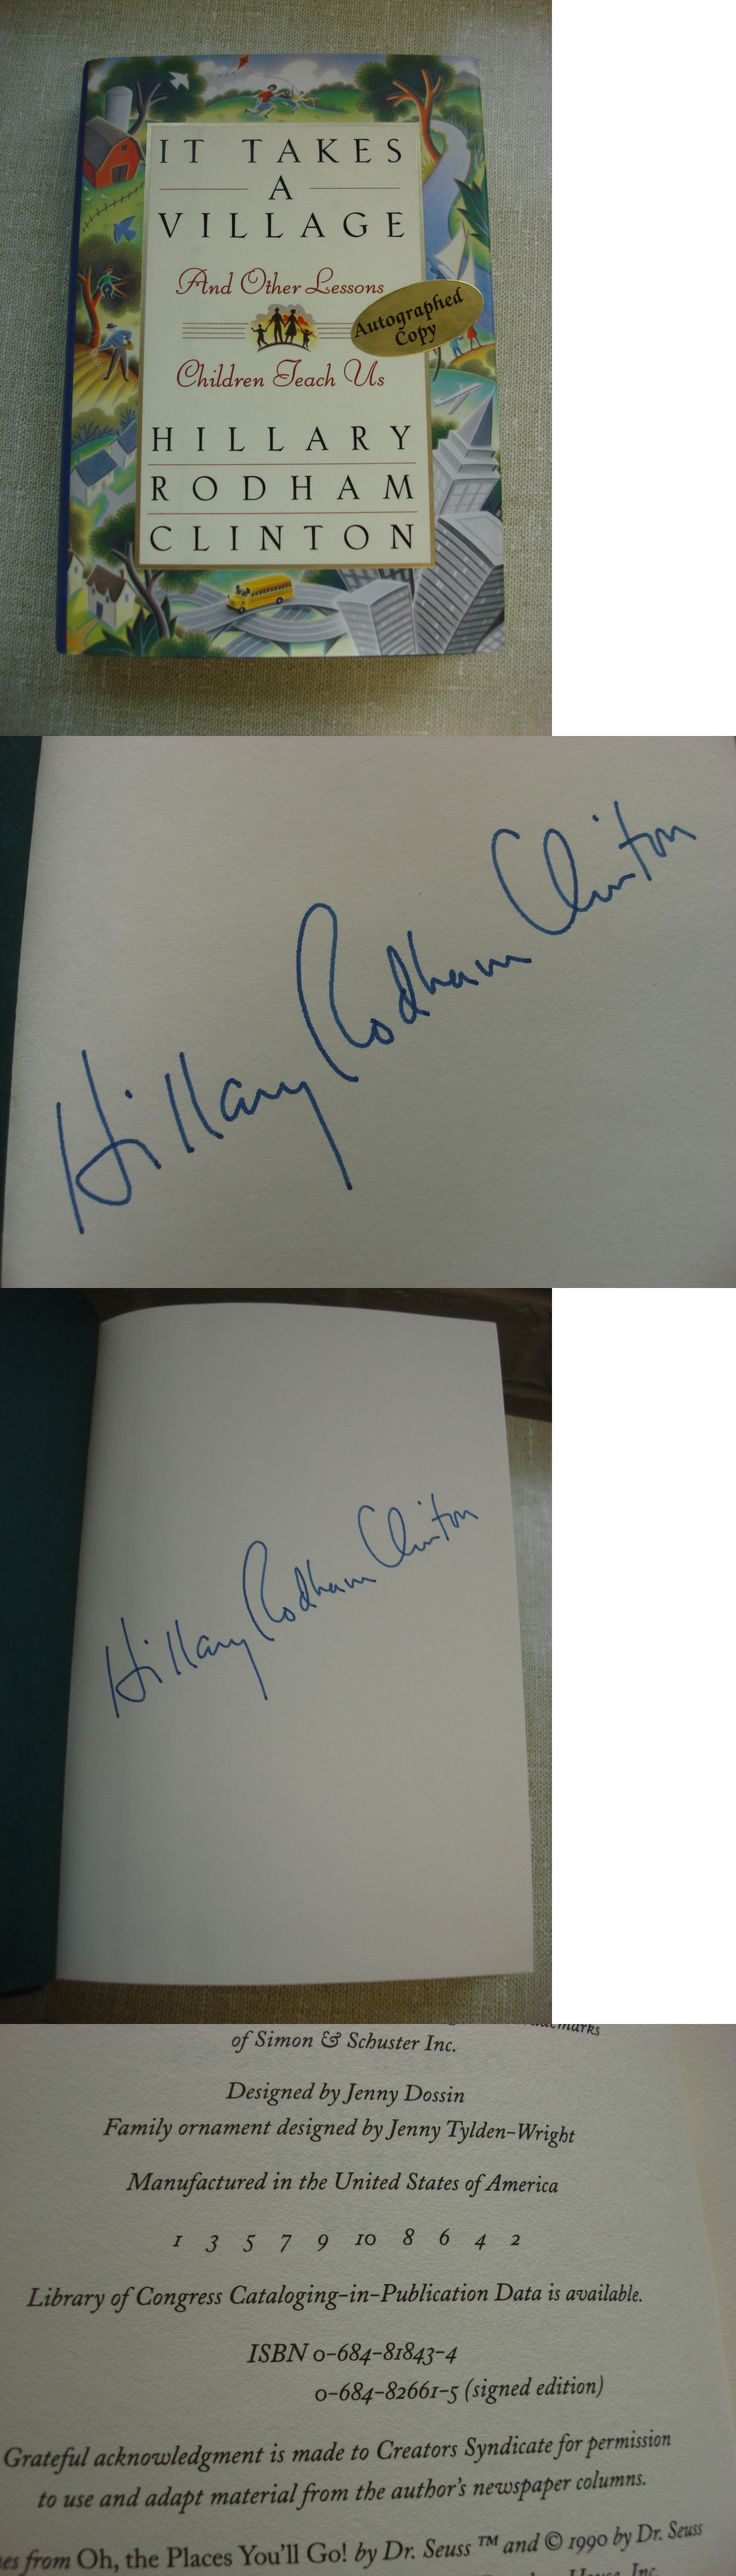 Hillary Clinton: Hillary Rodham Clinton It Takes A Village Signed 1St Printing 1St Edition Rare -> BUY IT NOW ONLY: $69.99 on eBay!